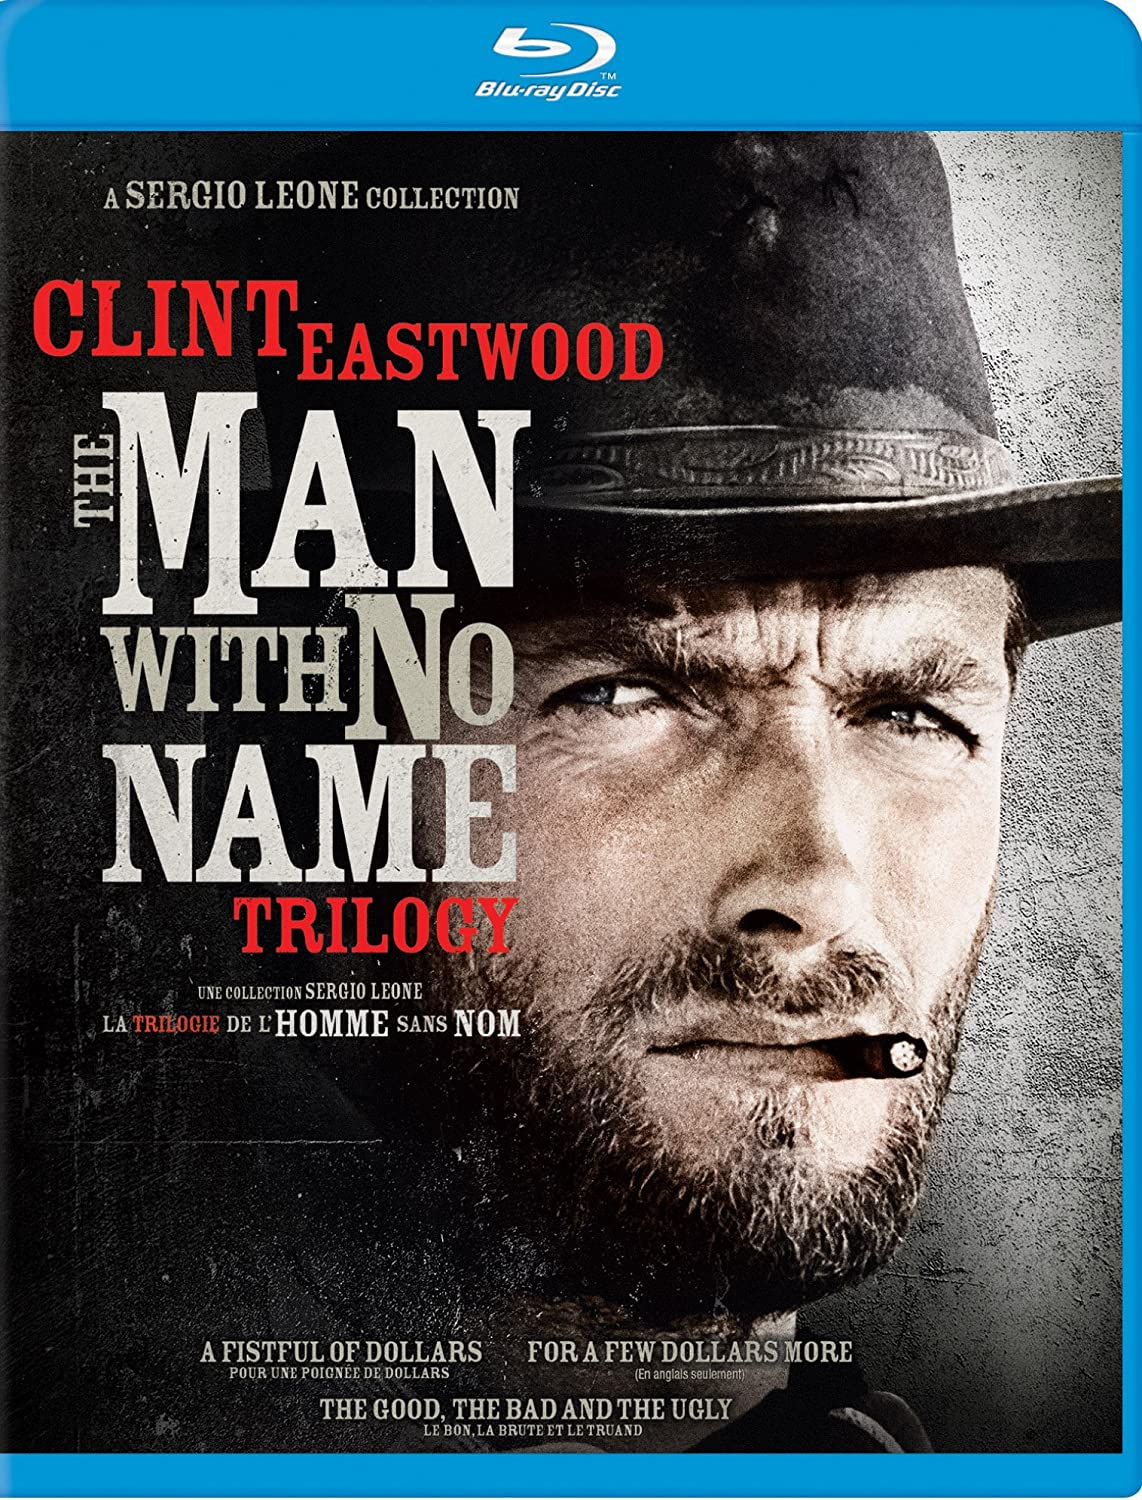 The Man With No Name Trilogy Collection (Bilingual) [Blu-ray] Clint Eastwood MGM